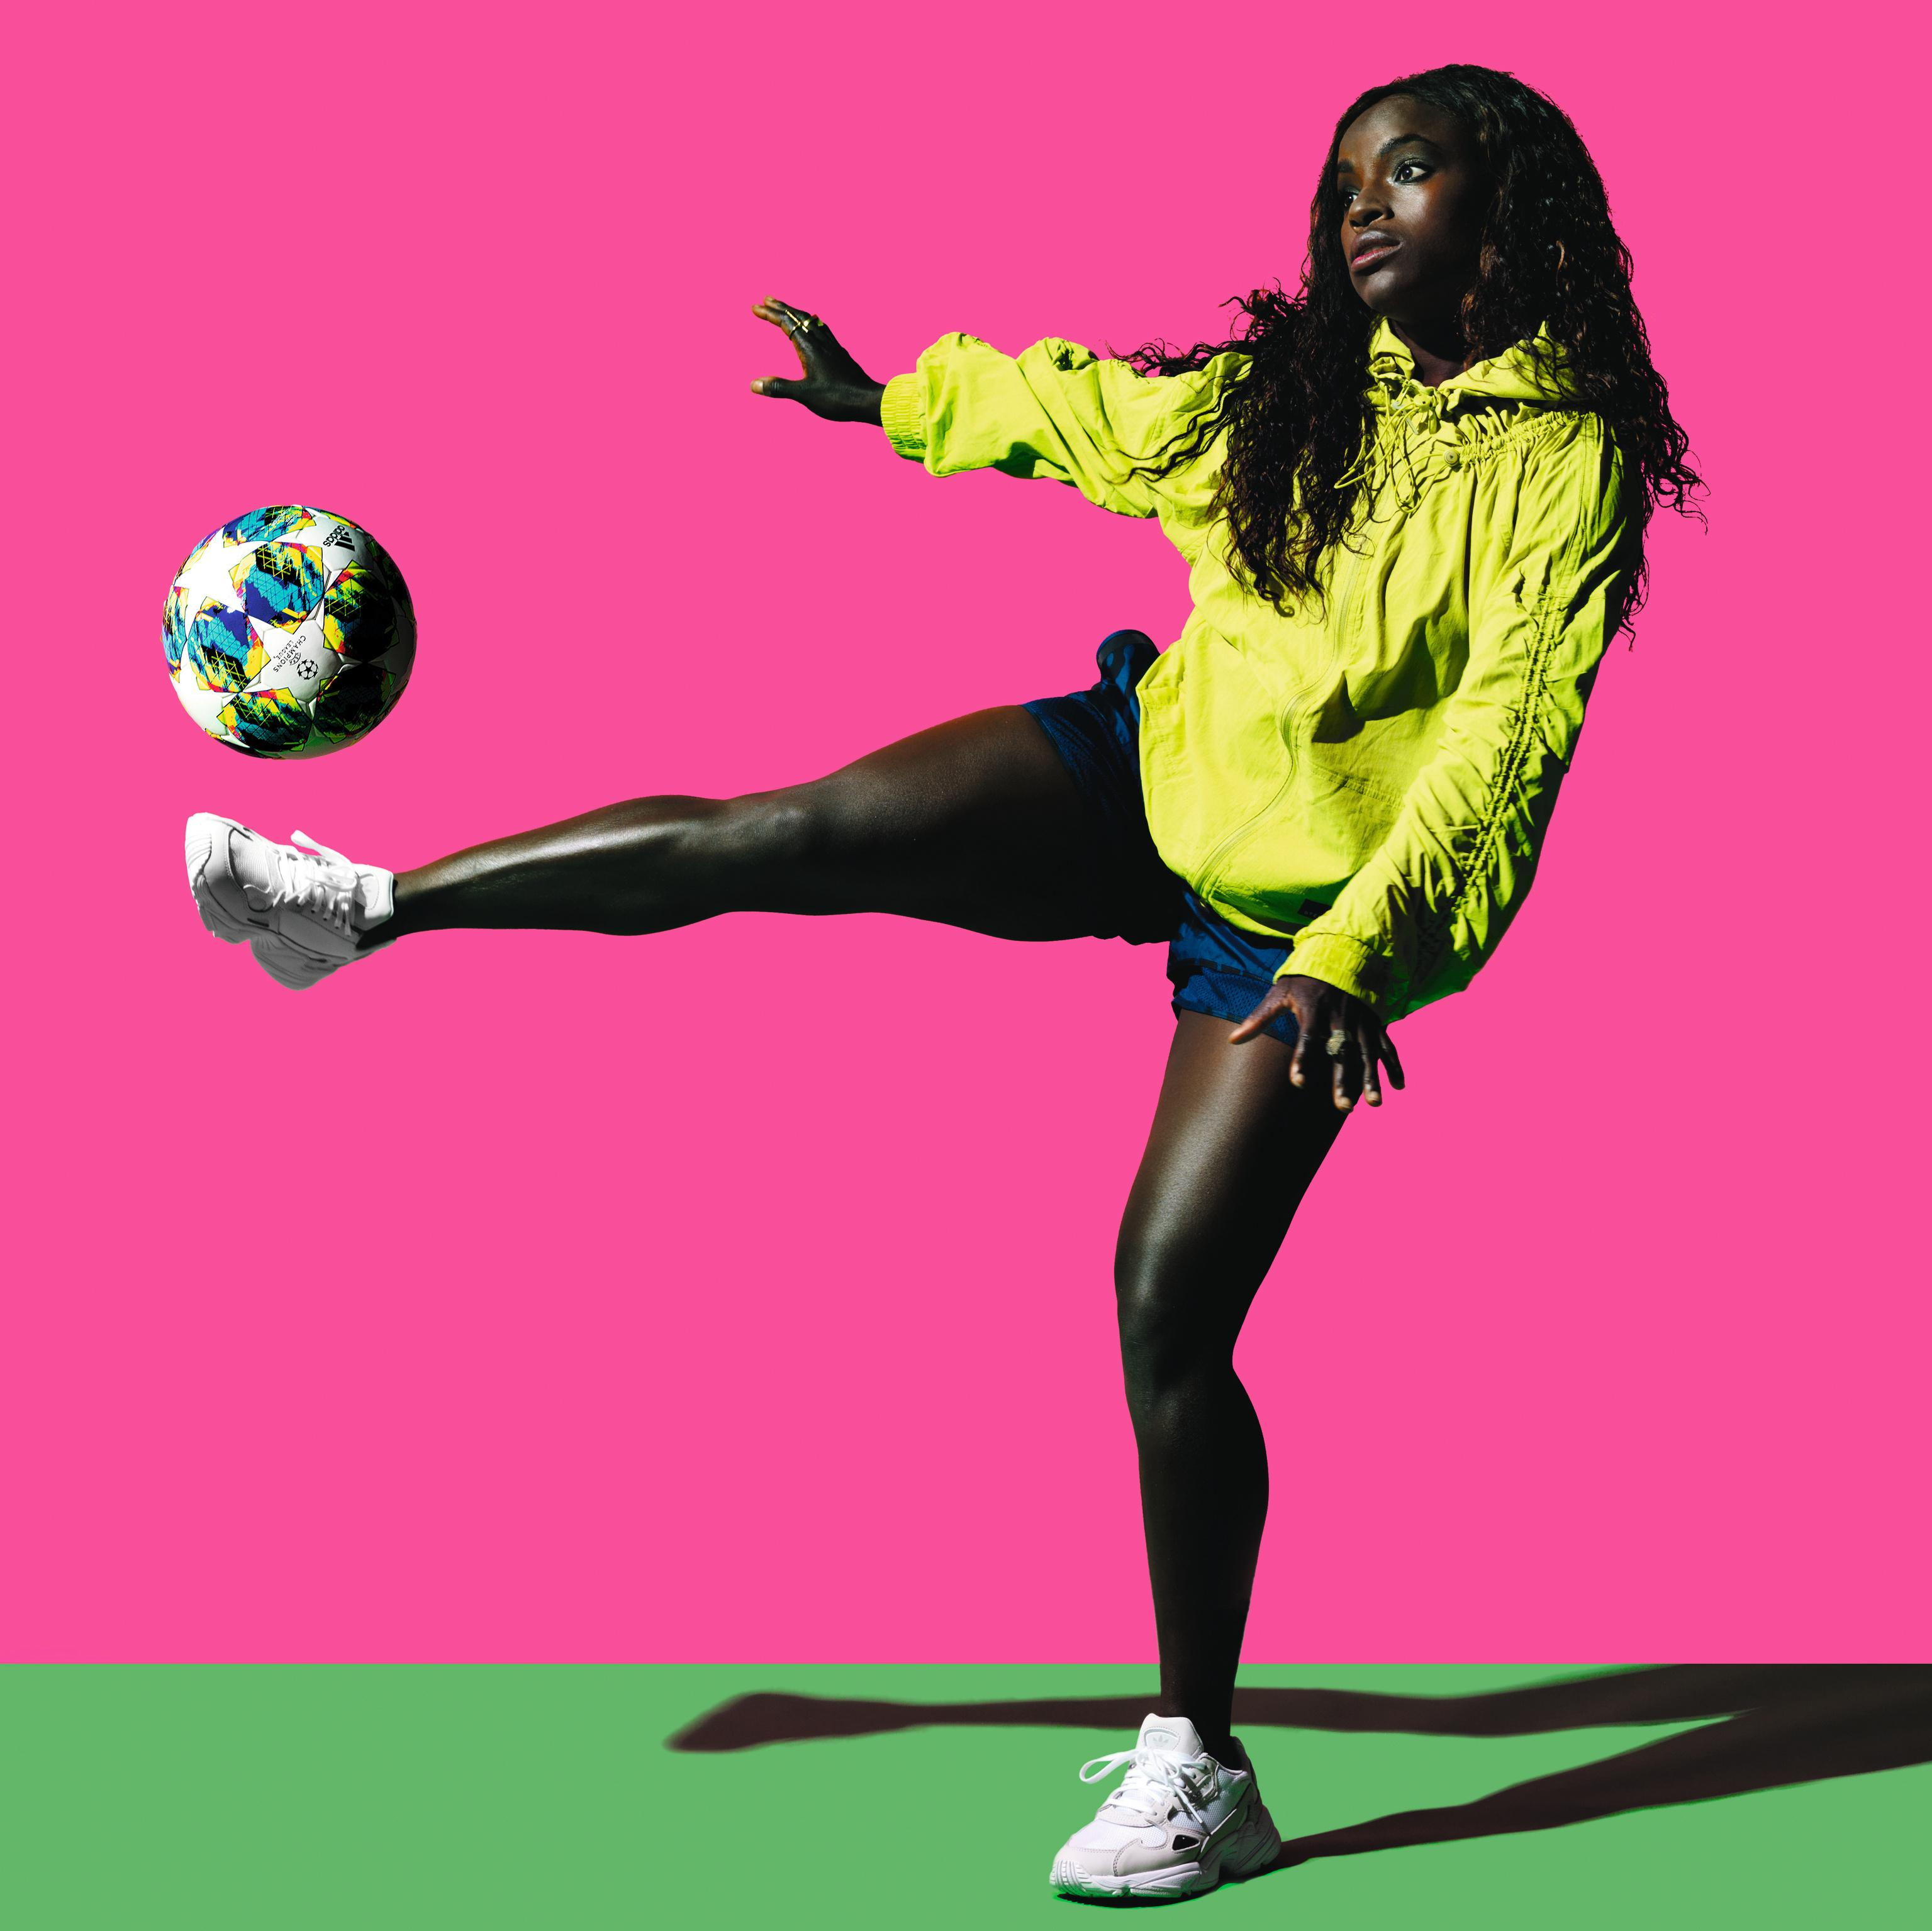 'A lot of the England team still haven't apologised': Eni Aluko on life after whistleblowing